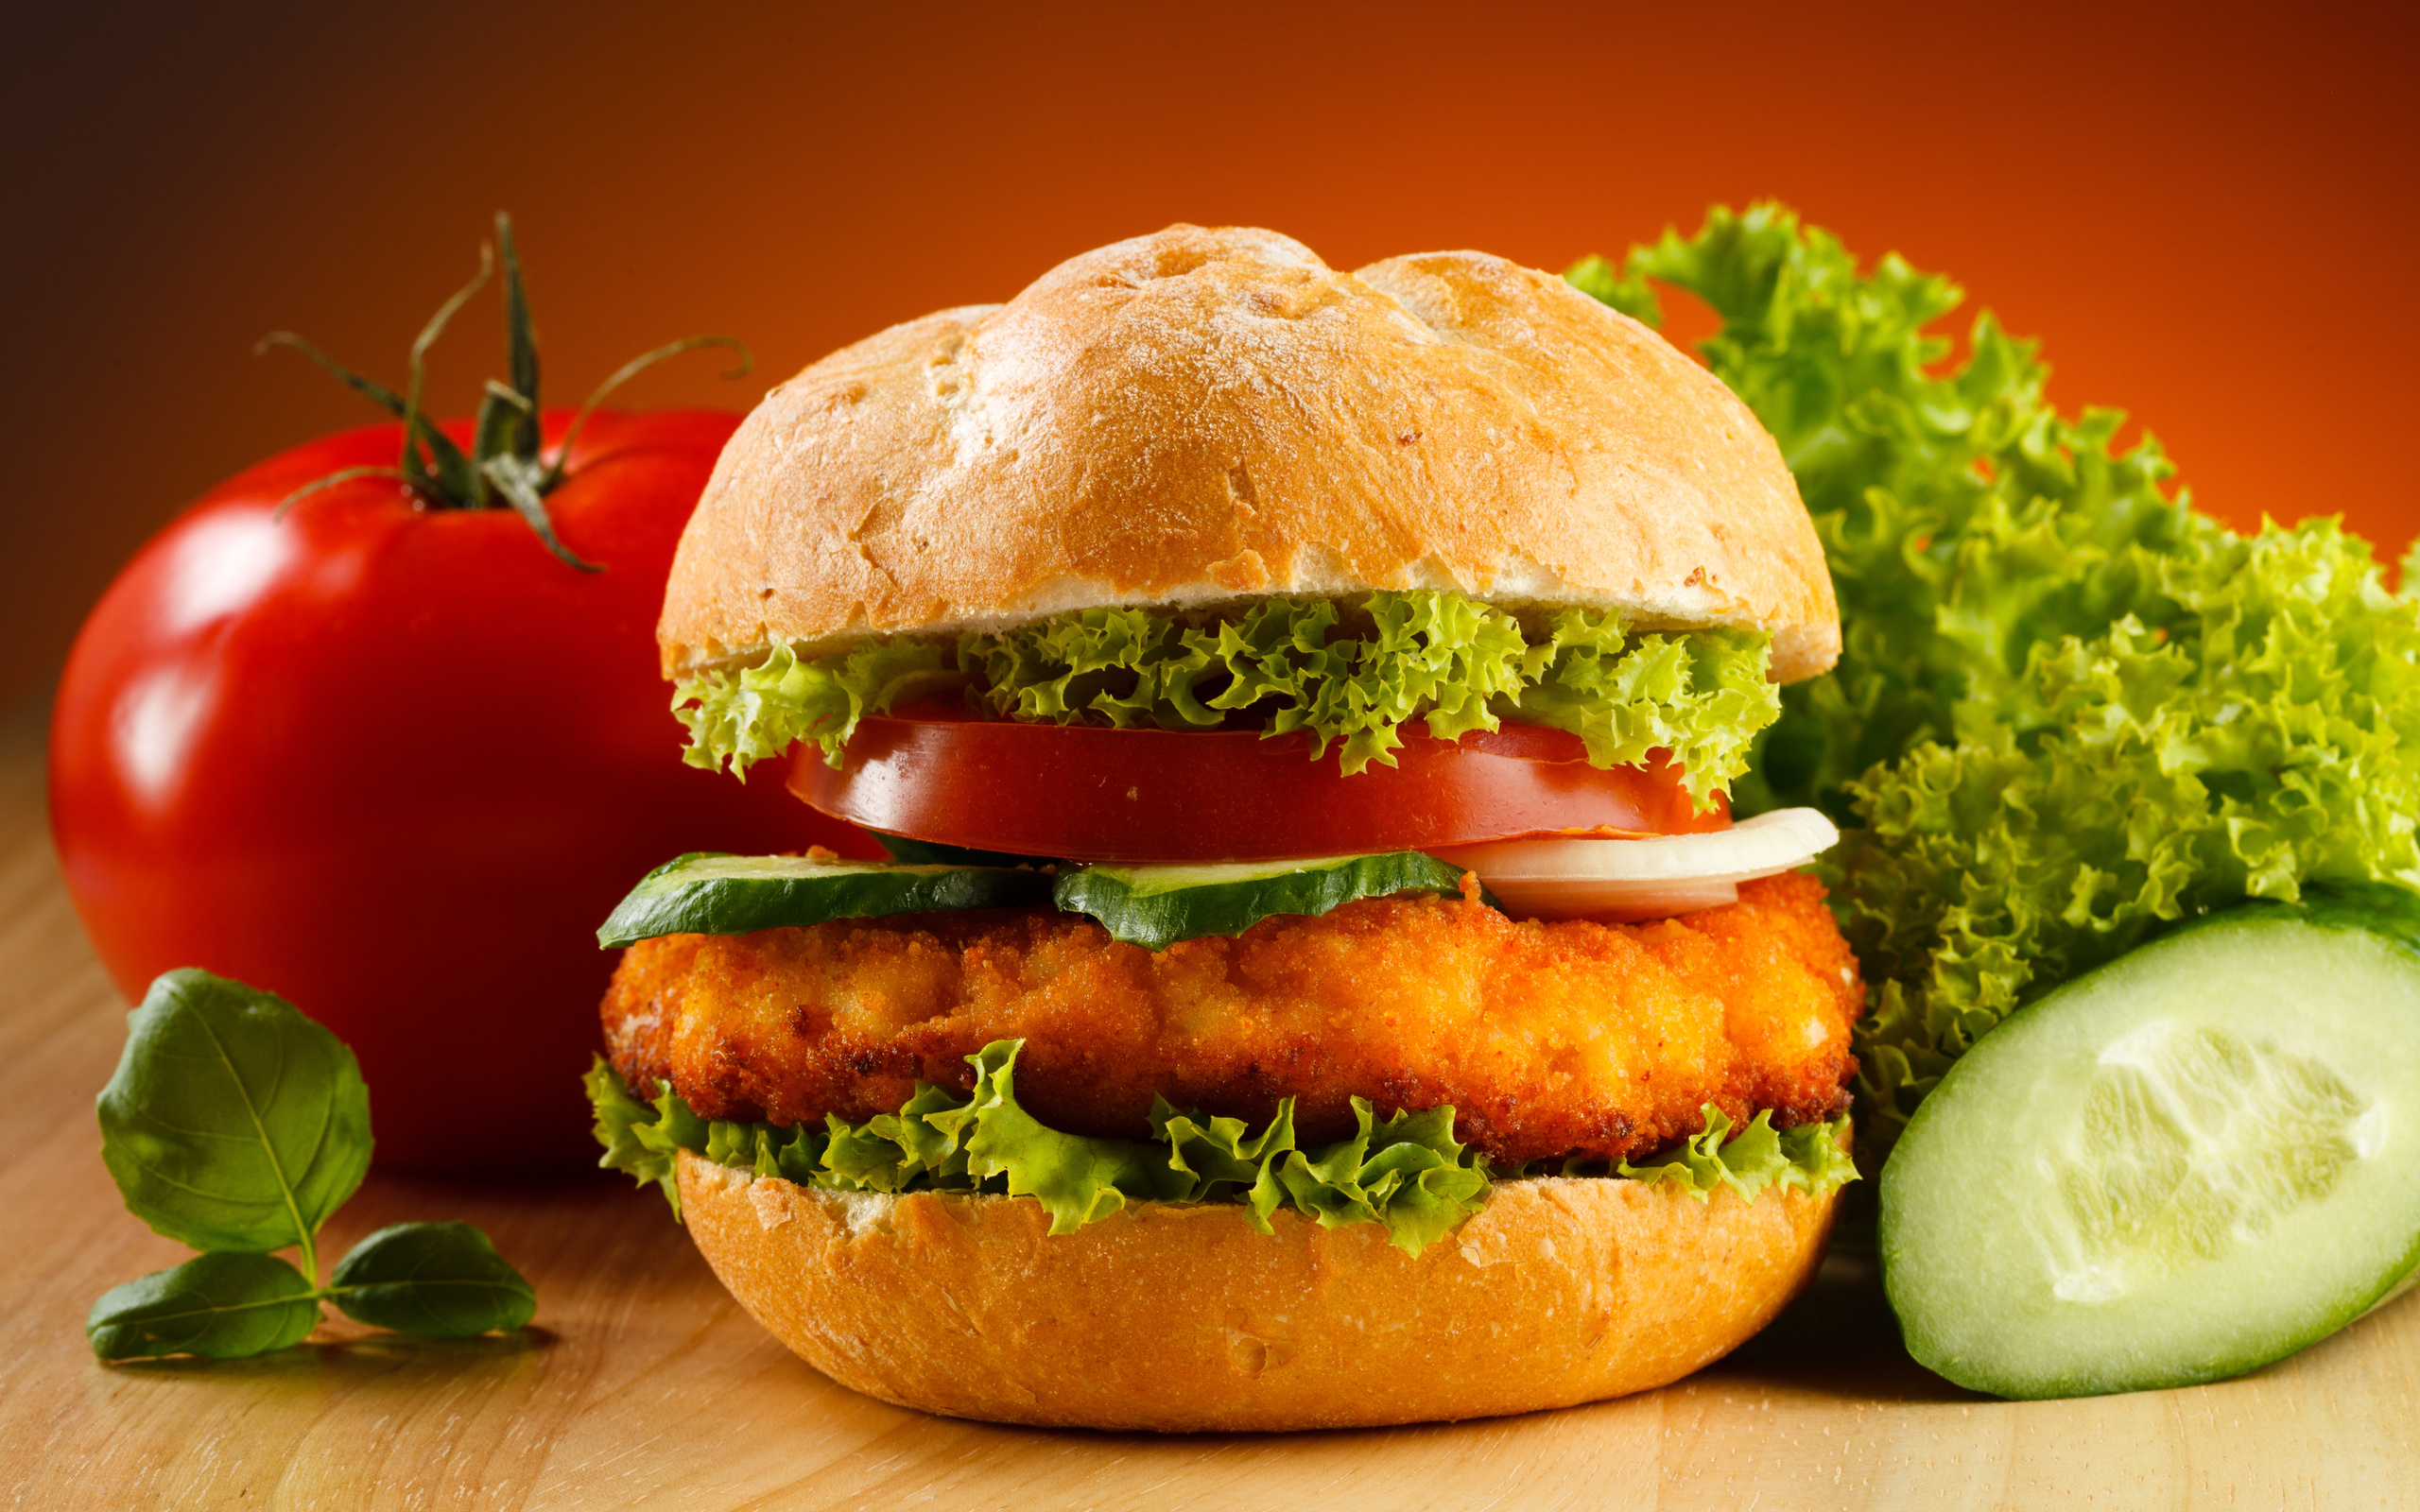 Fast Food Hamburger wallpapers and images   wallpapers pictures 2560x1600